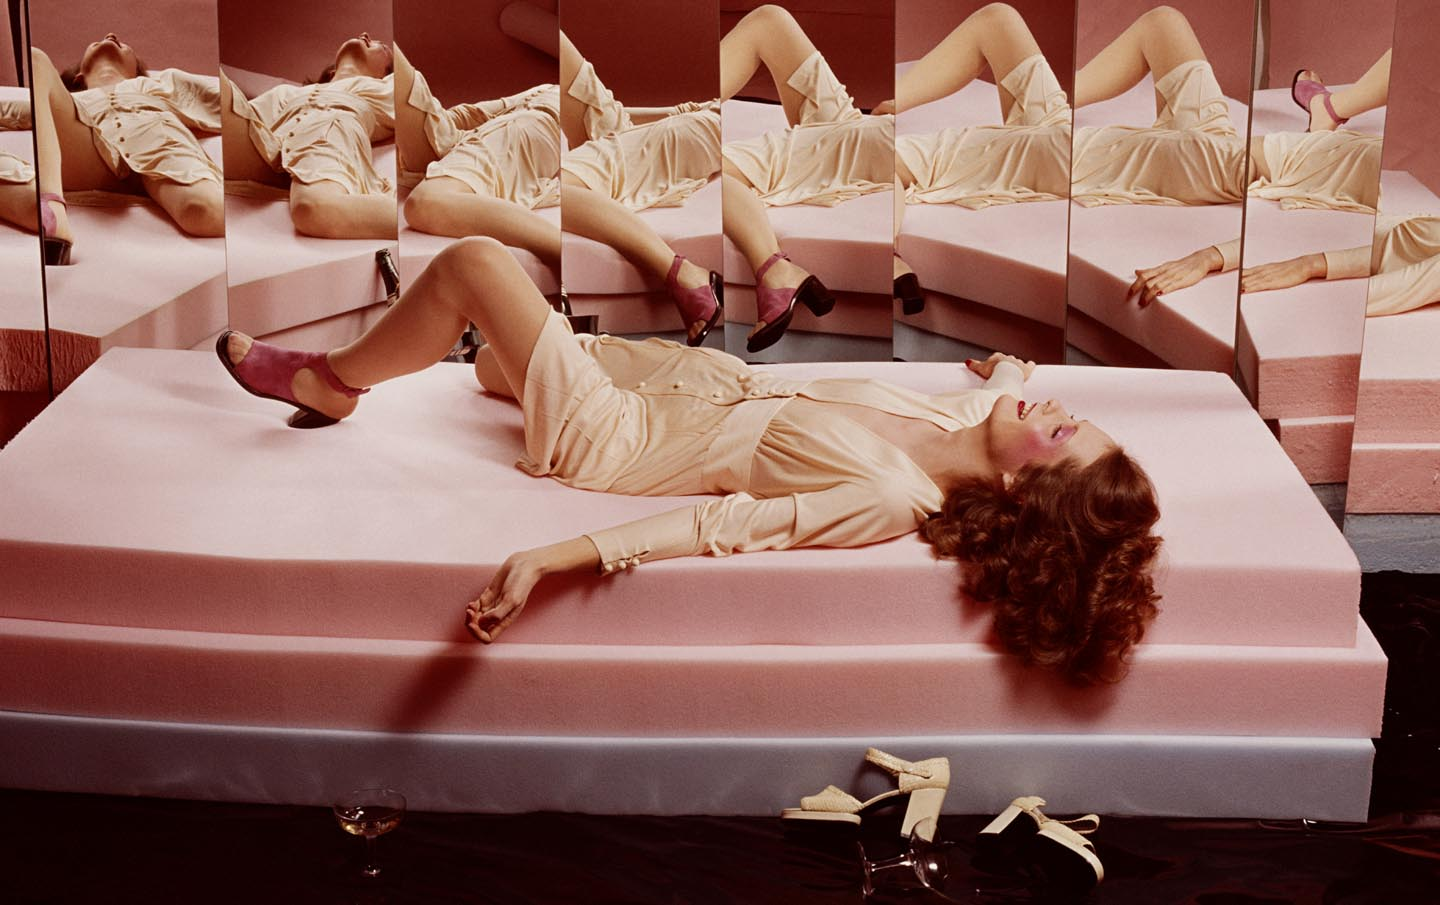 louise-alexander-gallery-guy-bourdin-11998-art-07j-gb-1.jpg